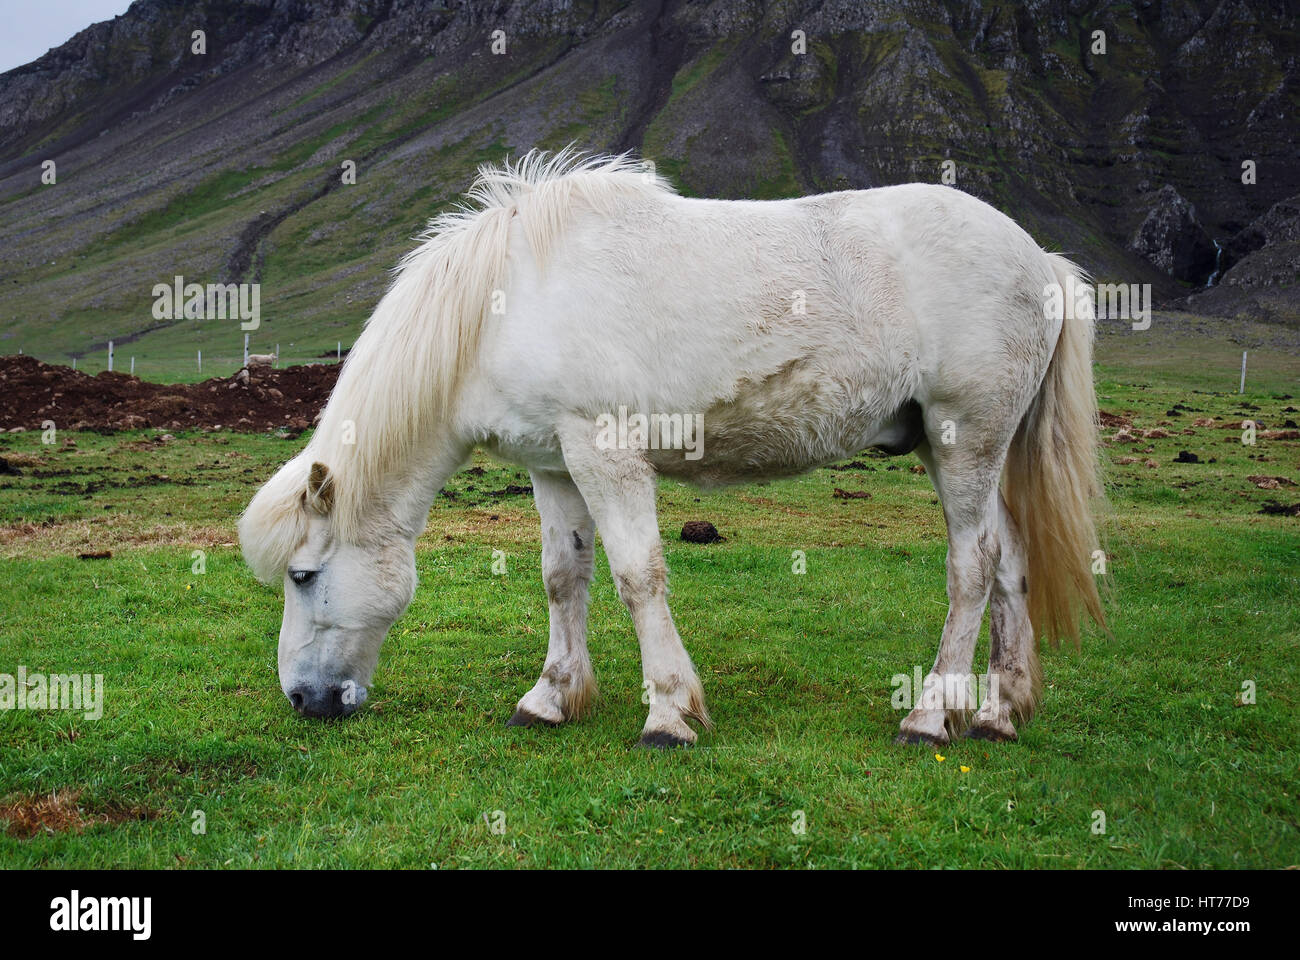 Iceland's special breed horse - white sturdy stallion eating grass on a rural countryside landscape - Stock Image